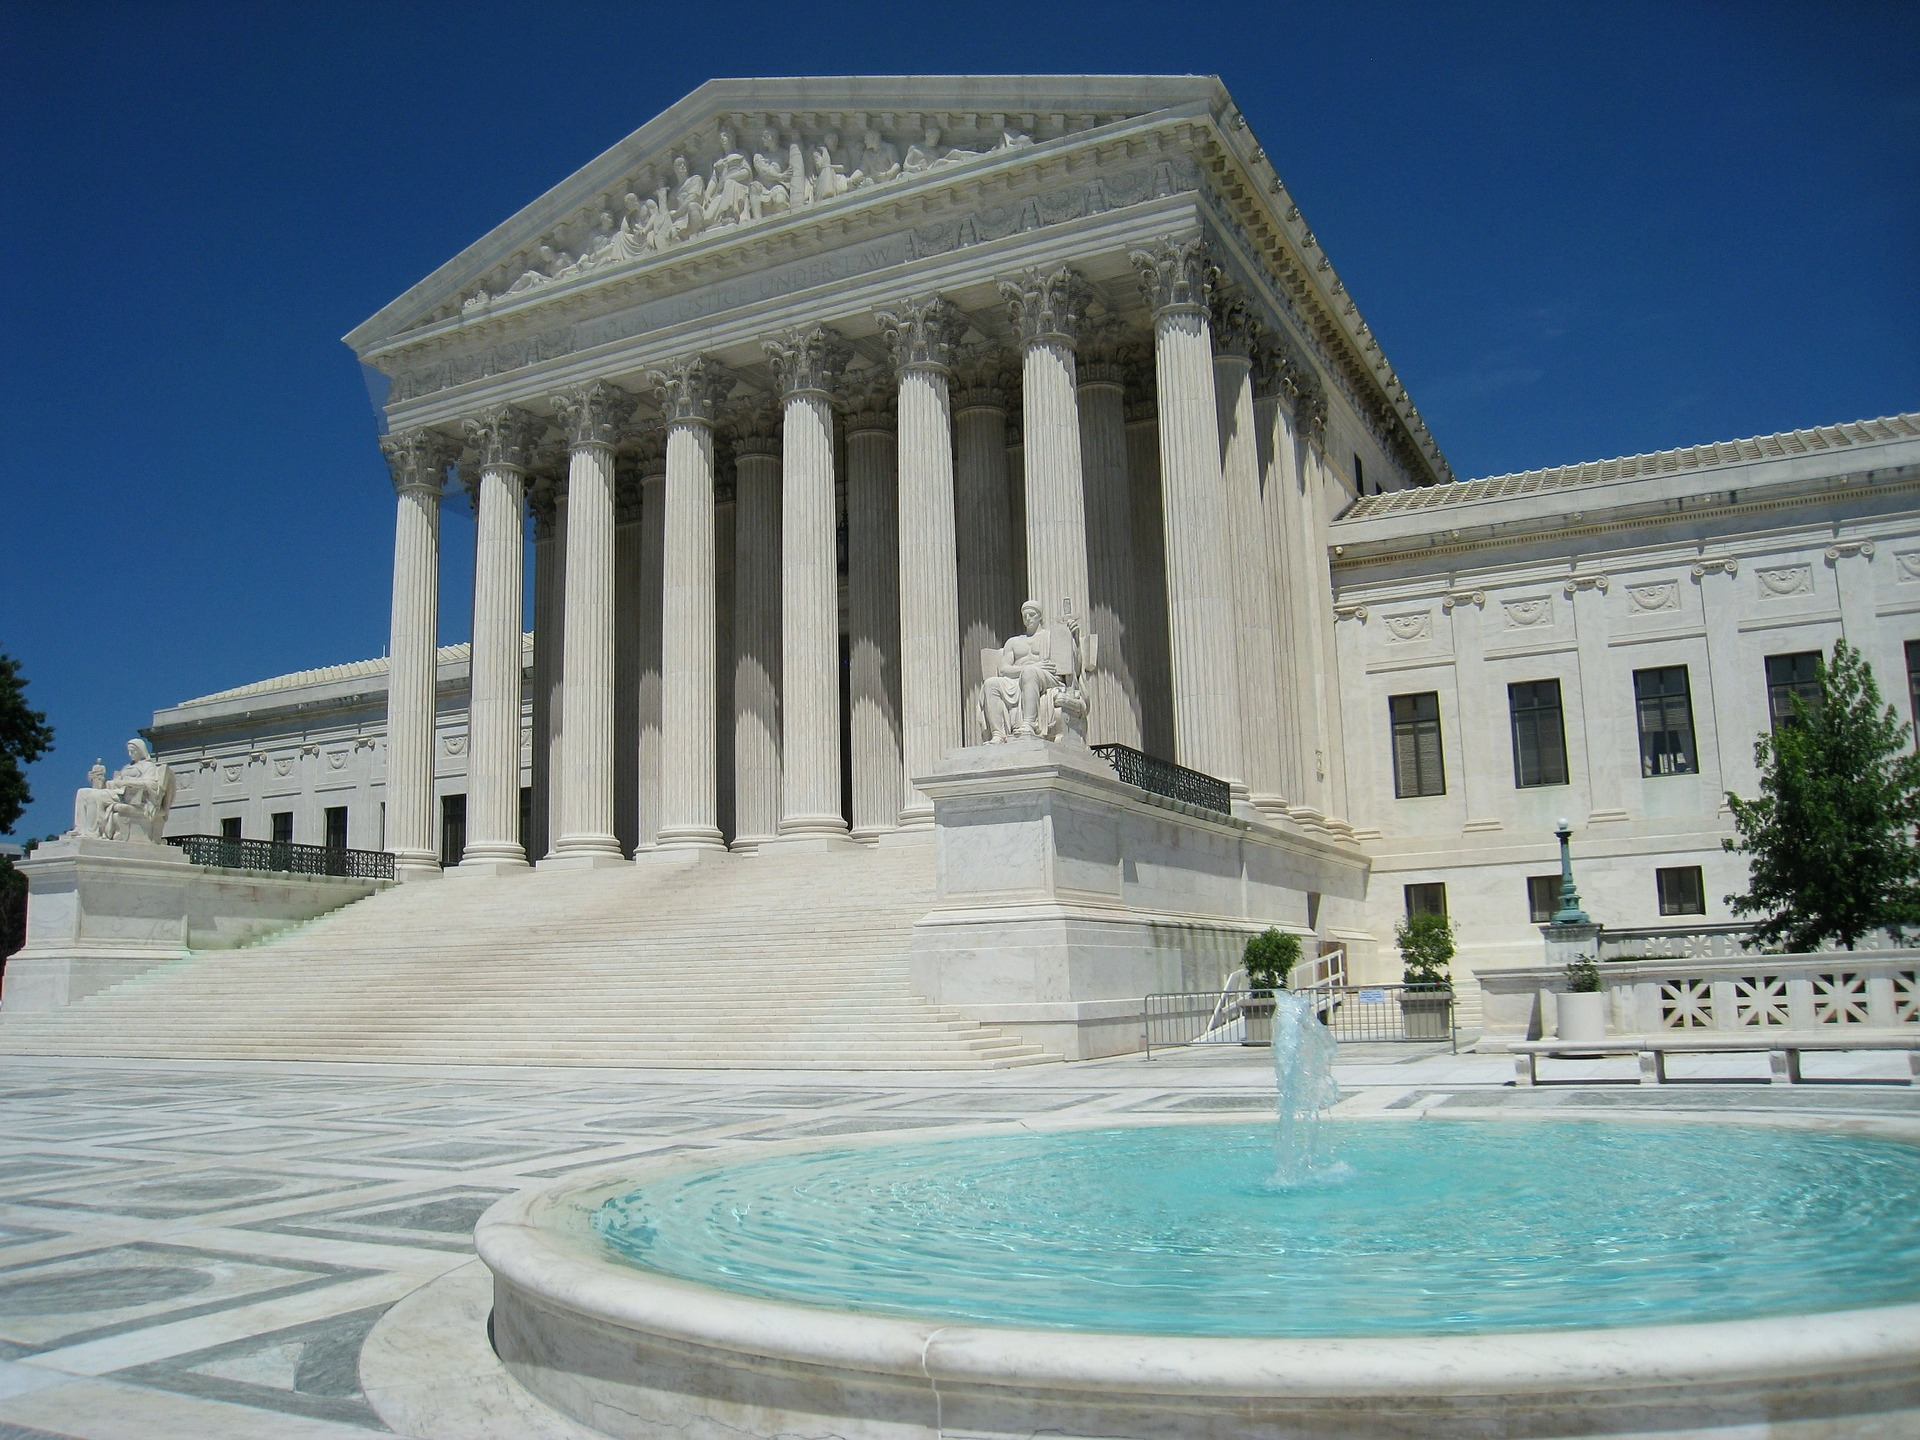 Photo of the US Supreme Court building in Washington, DC